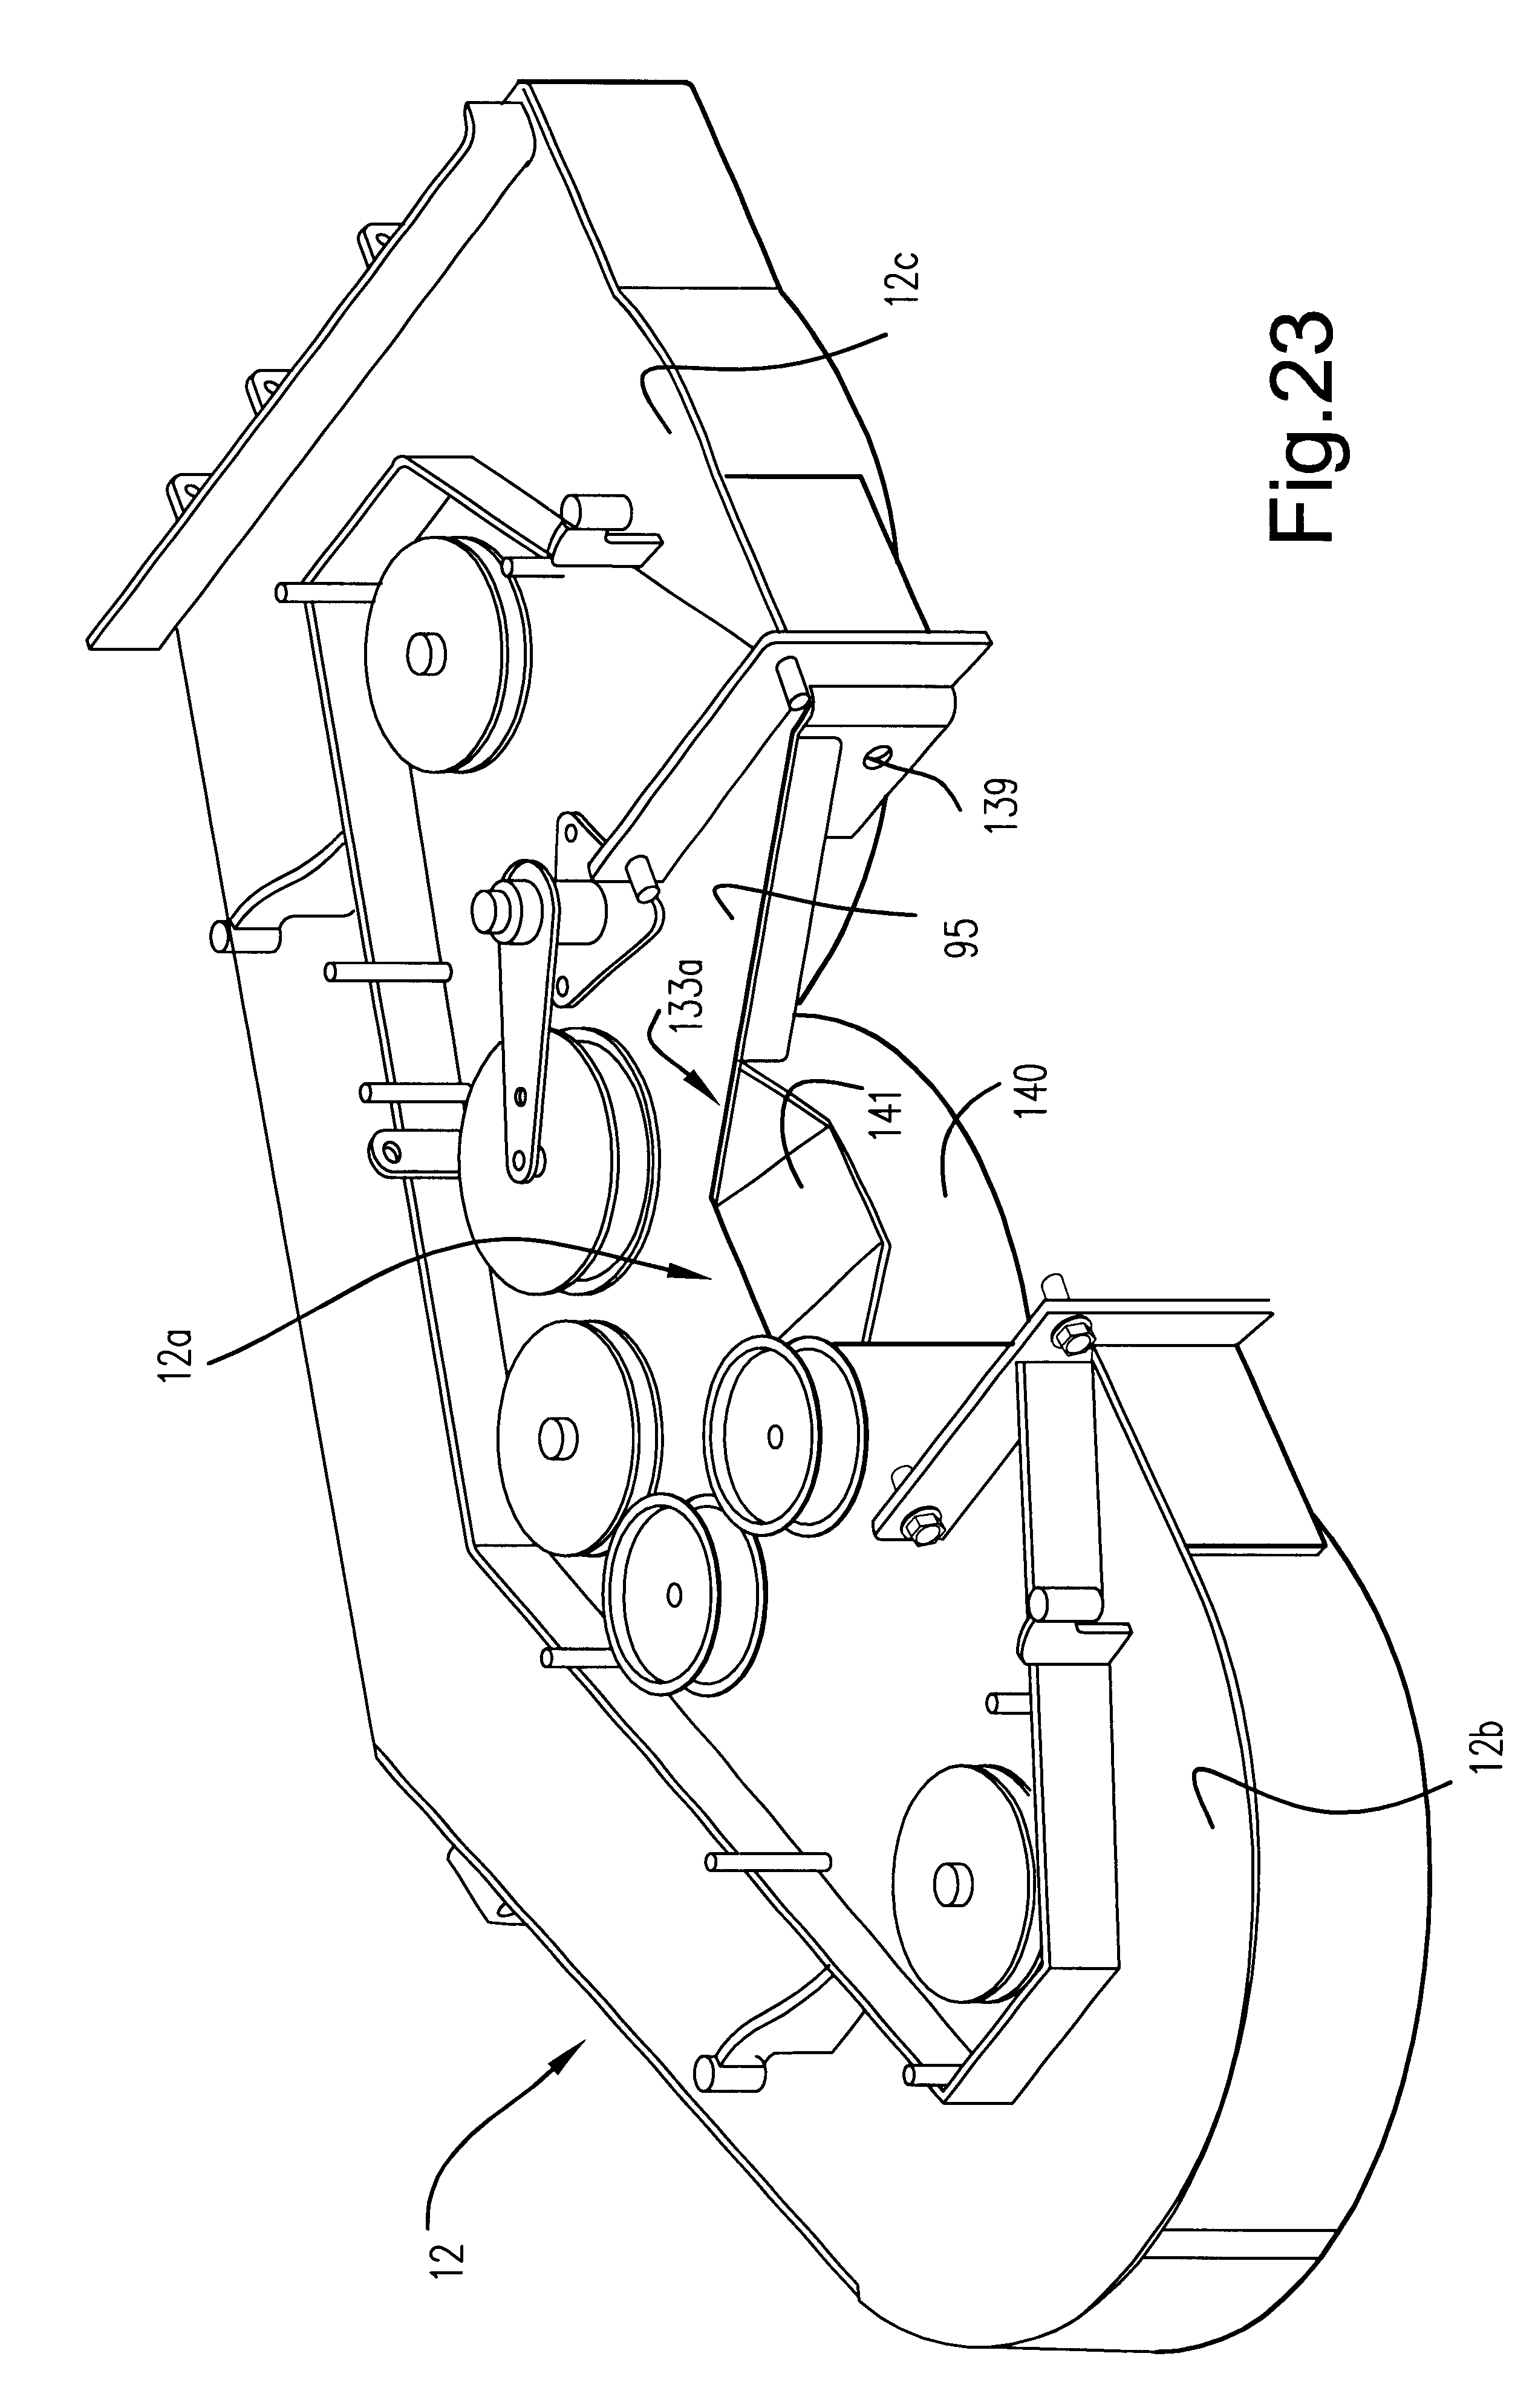 Patent US6442917 - Power lawn mower including deck lift system ...